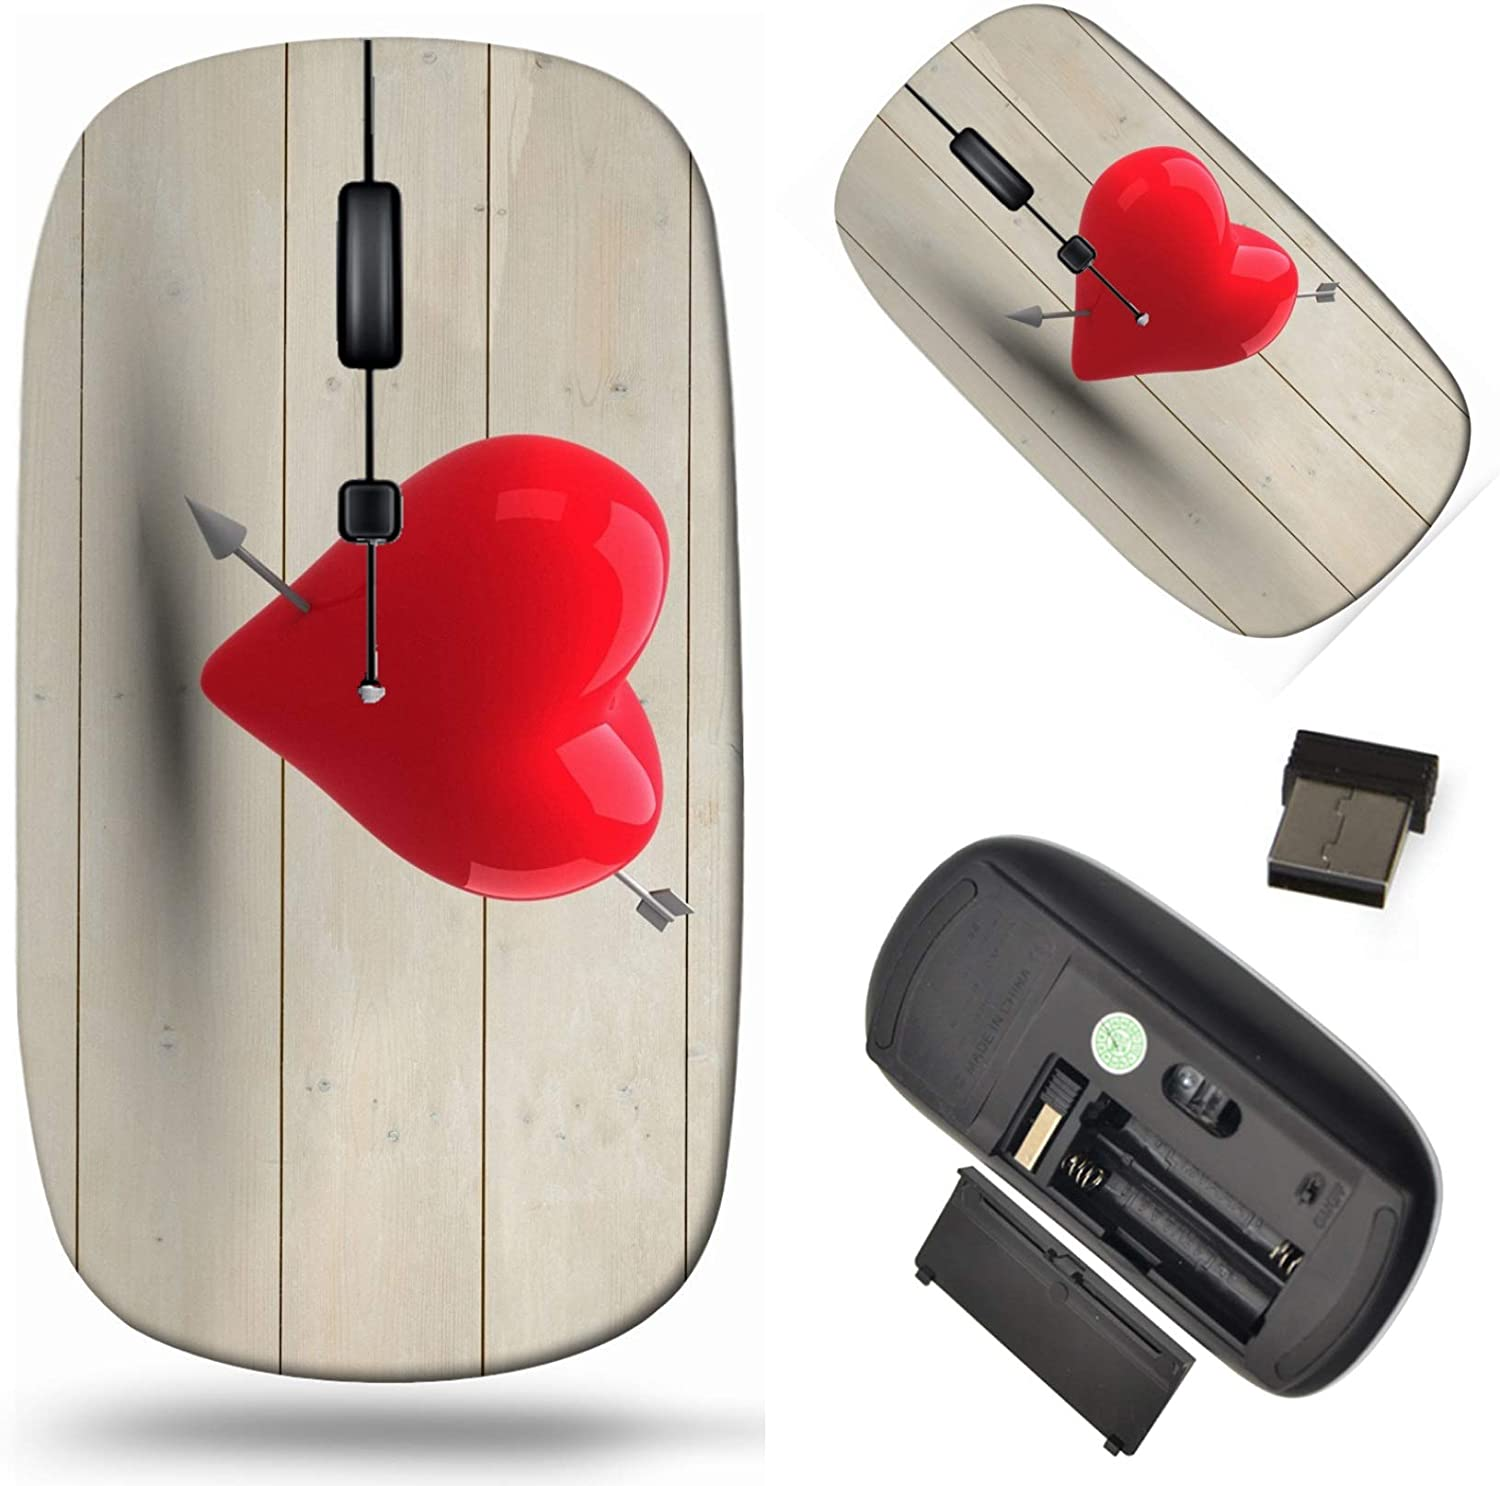 Wireless Computer Mouse 2.4G Long Beach Mall with Cor Receiver USB Laptop Max 43% OFF